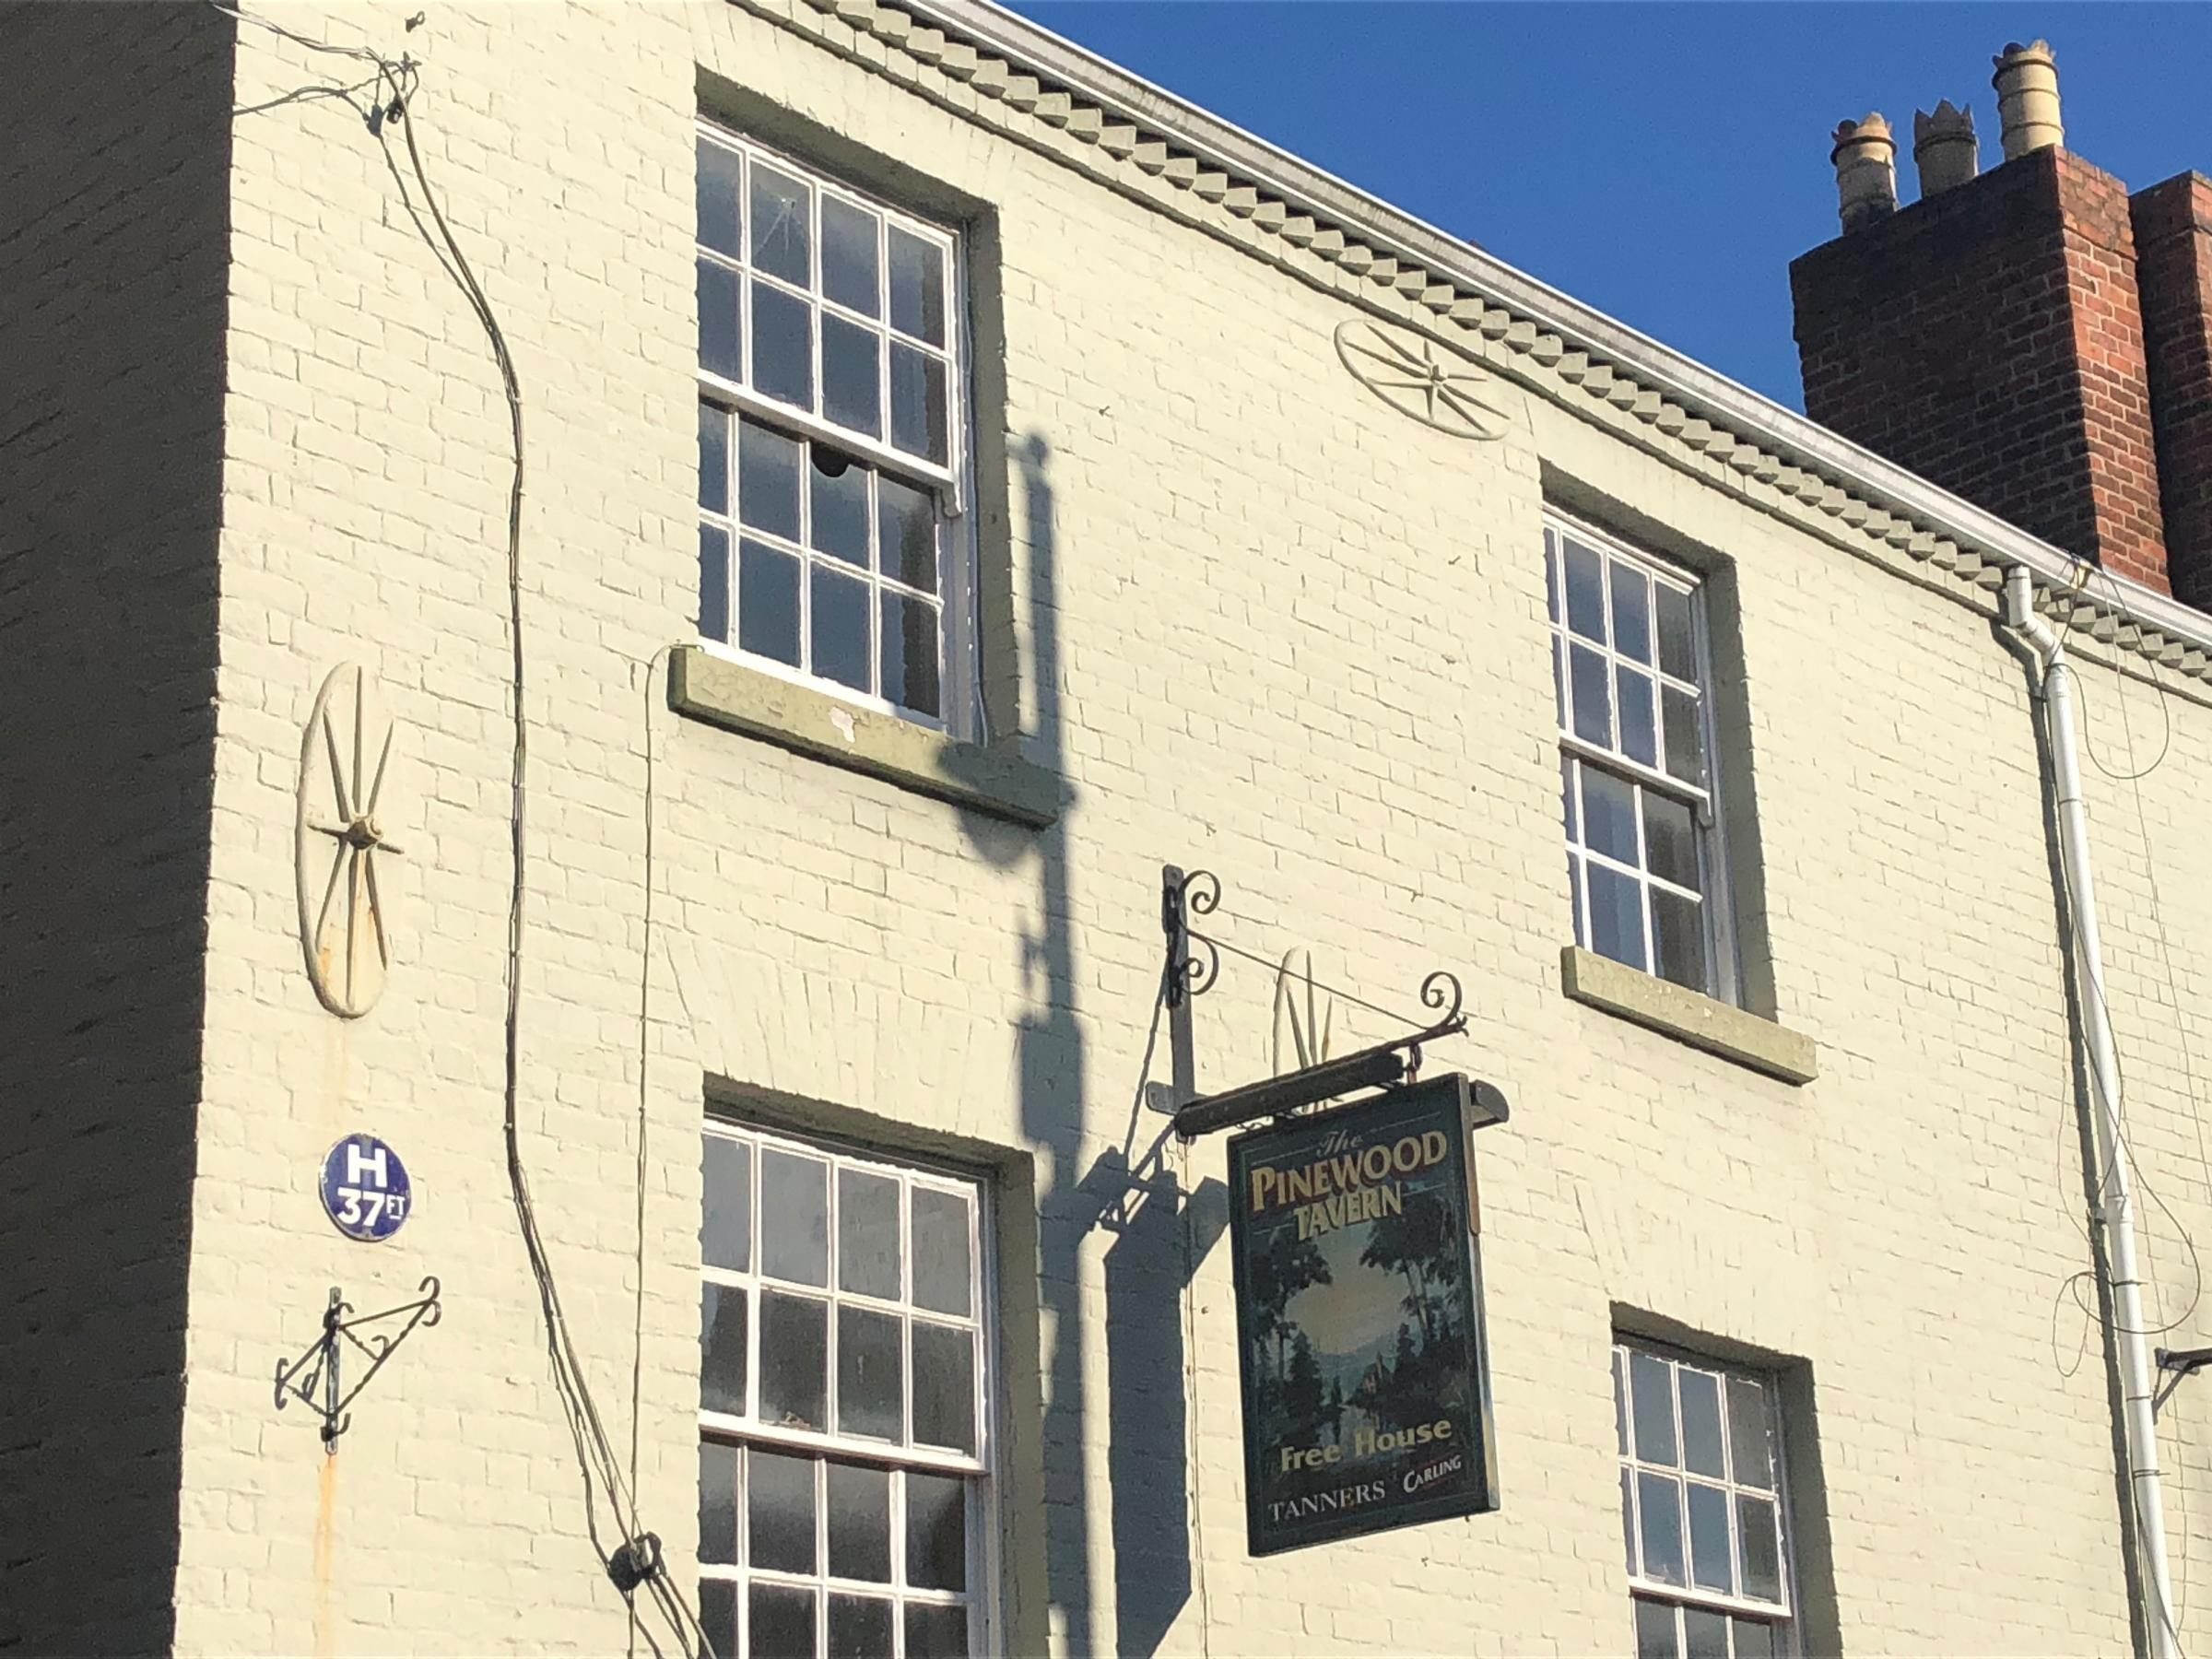 Plans to develop Welshpool's Pinewood pub resubmitted - Powys County Times